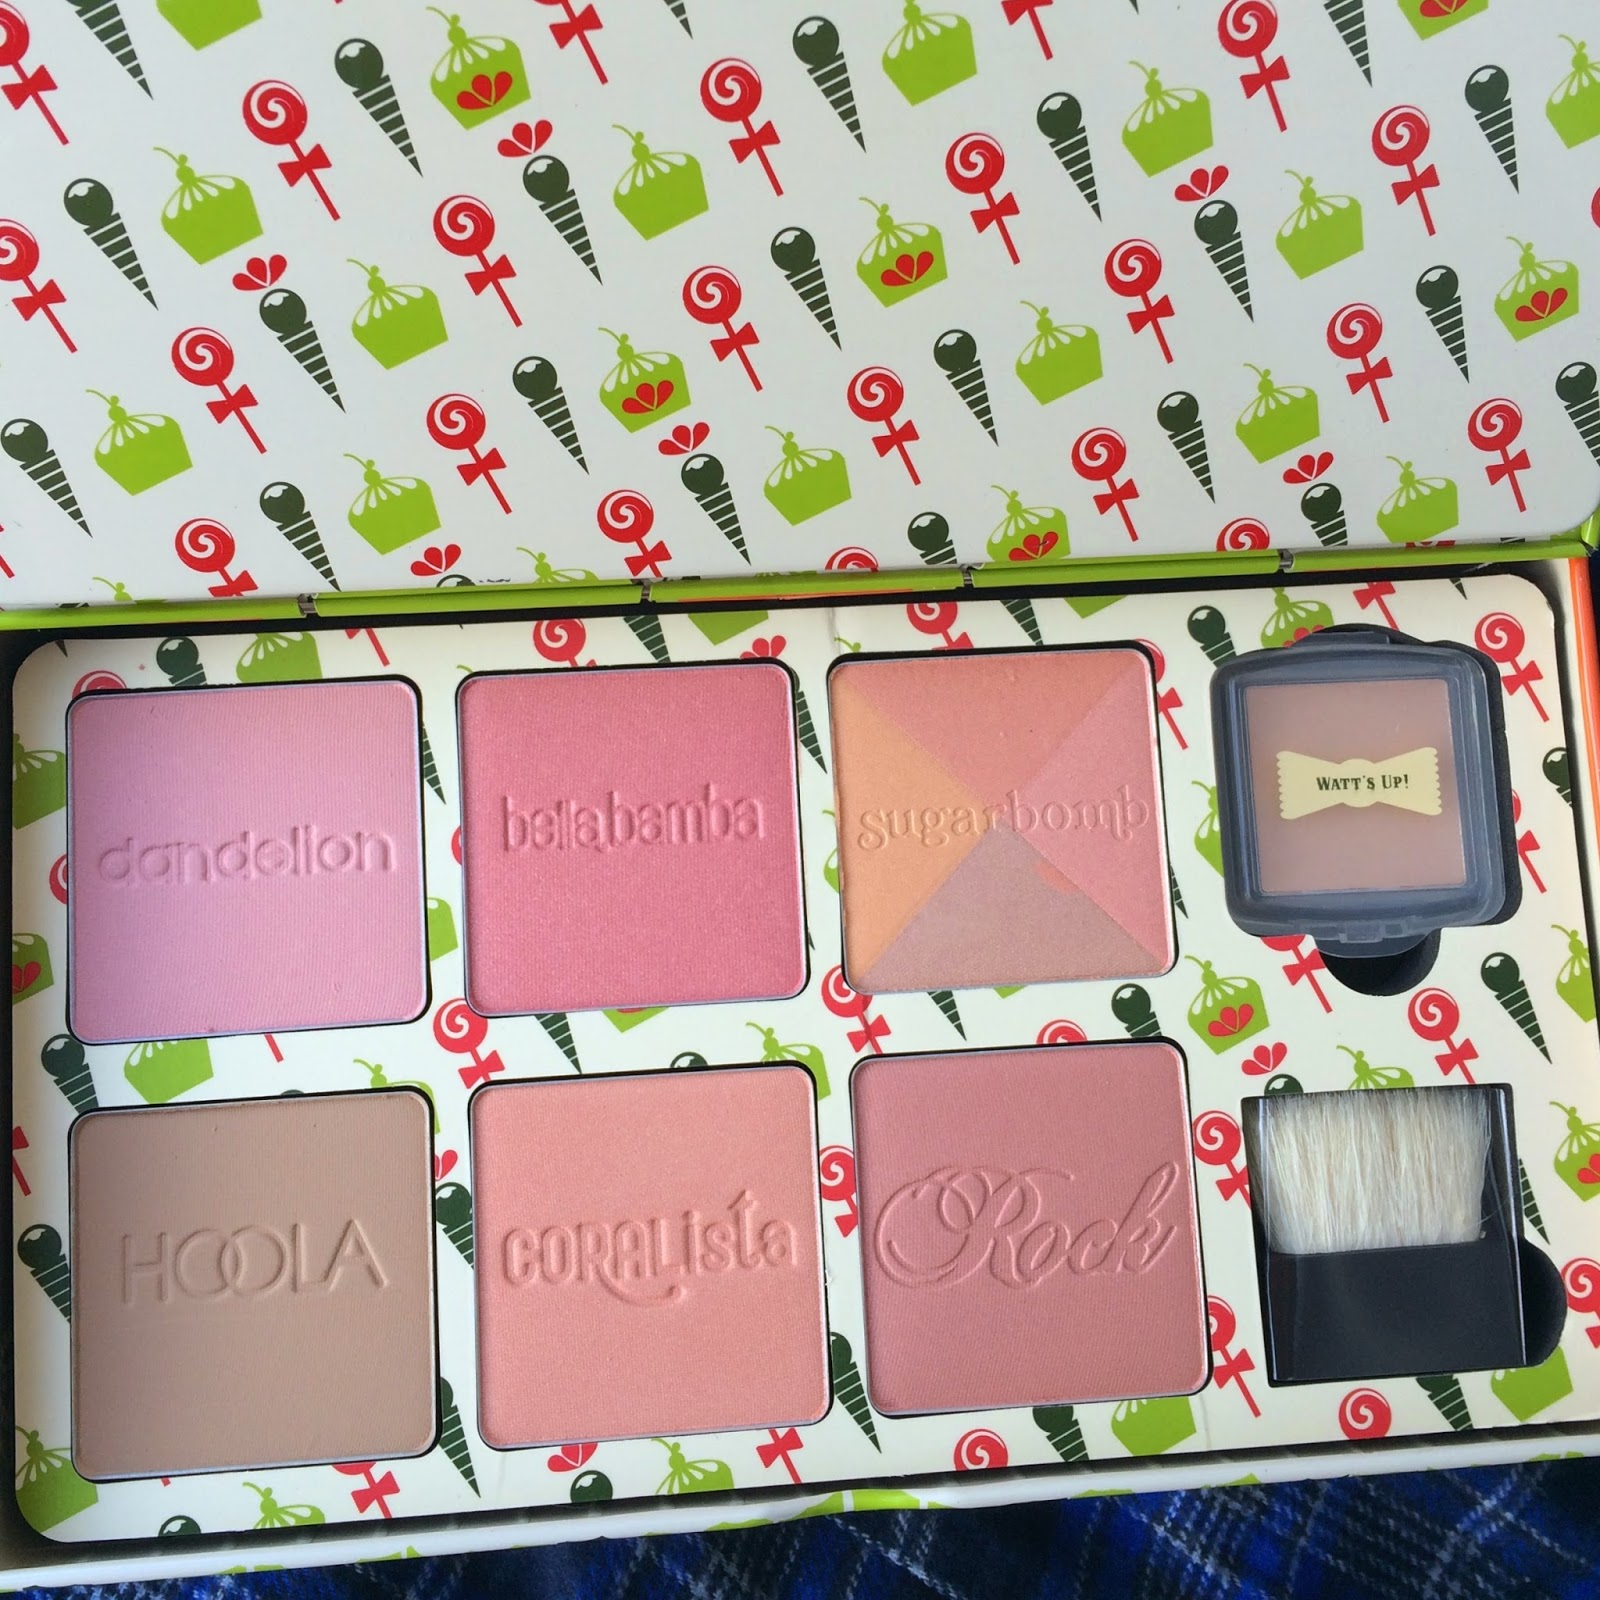 benefit-cheeky-sweet-pot-gift-set-review